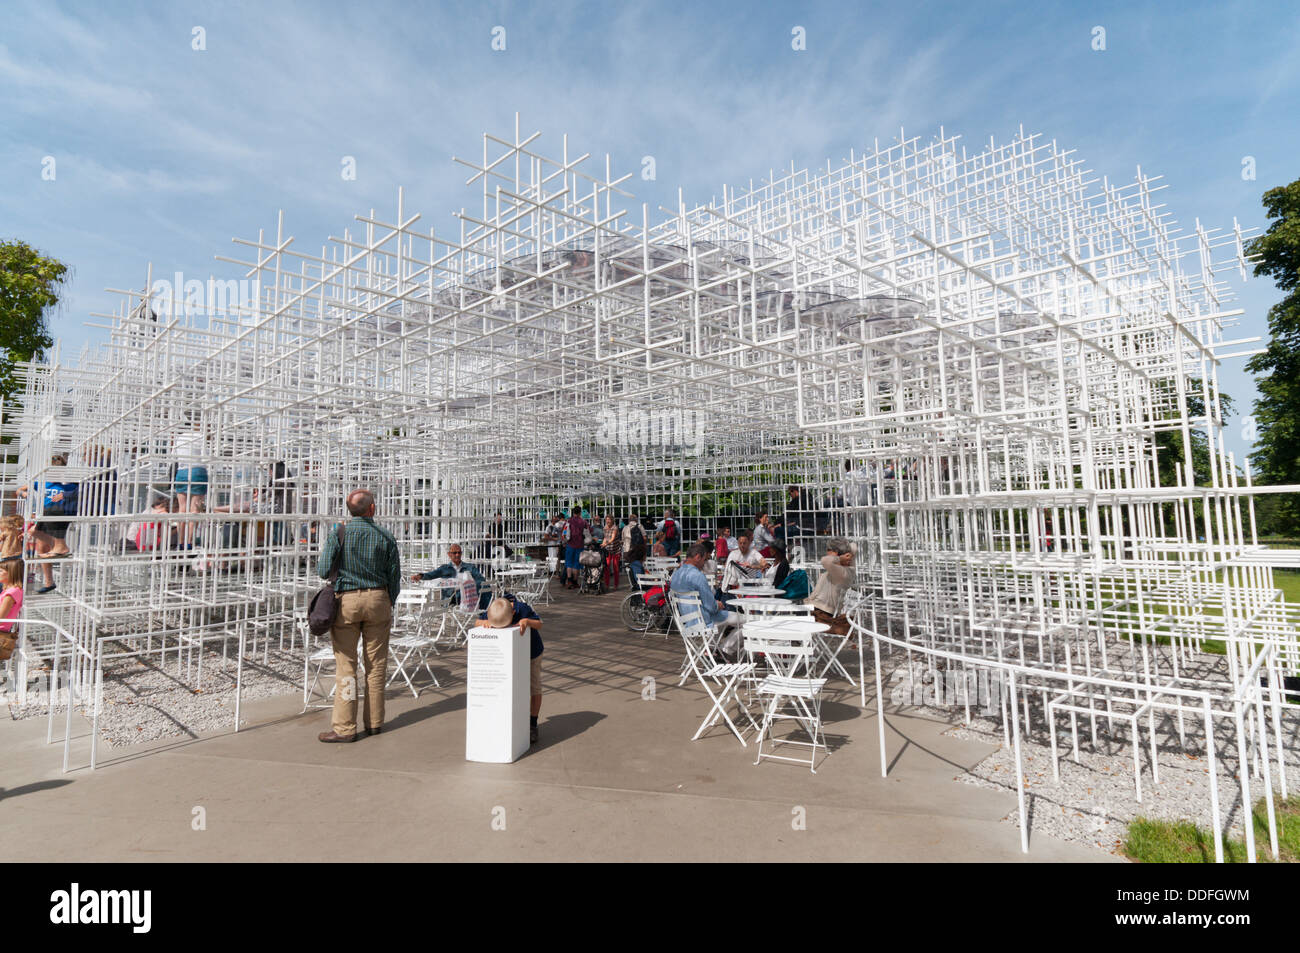 The entrance to the 2013 Serpentine Gallery Summer Pavilion designed by the Japanese architect Sou Fujimoto. - Stock Image